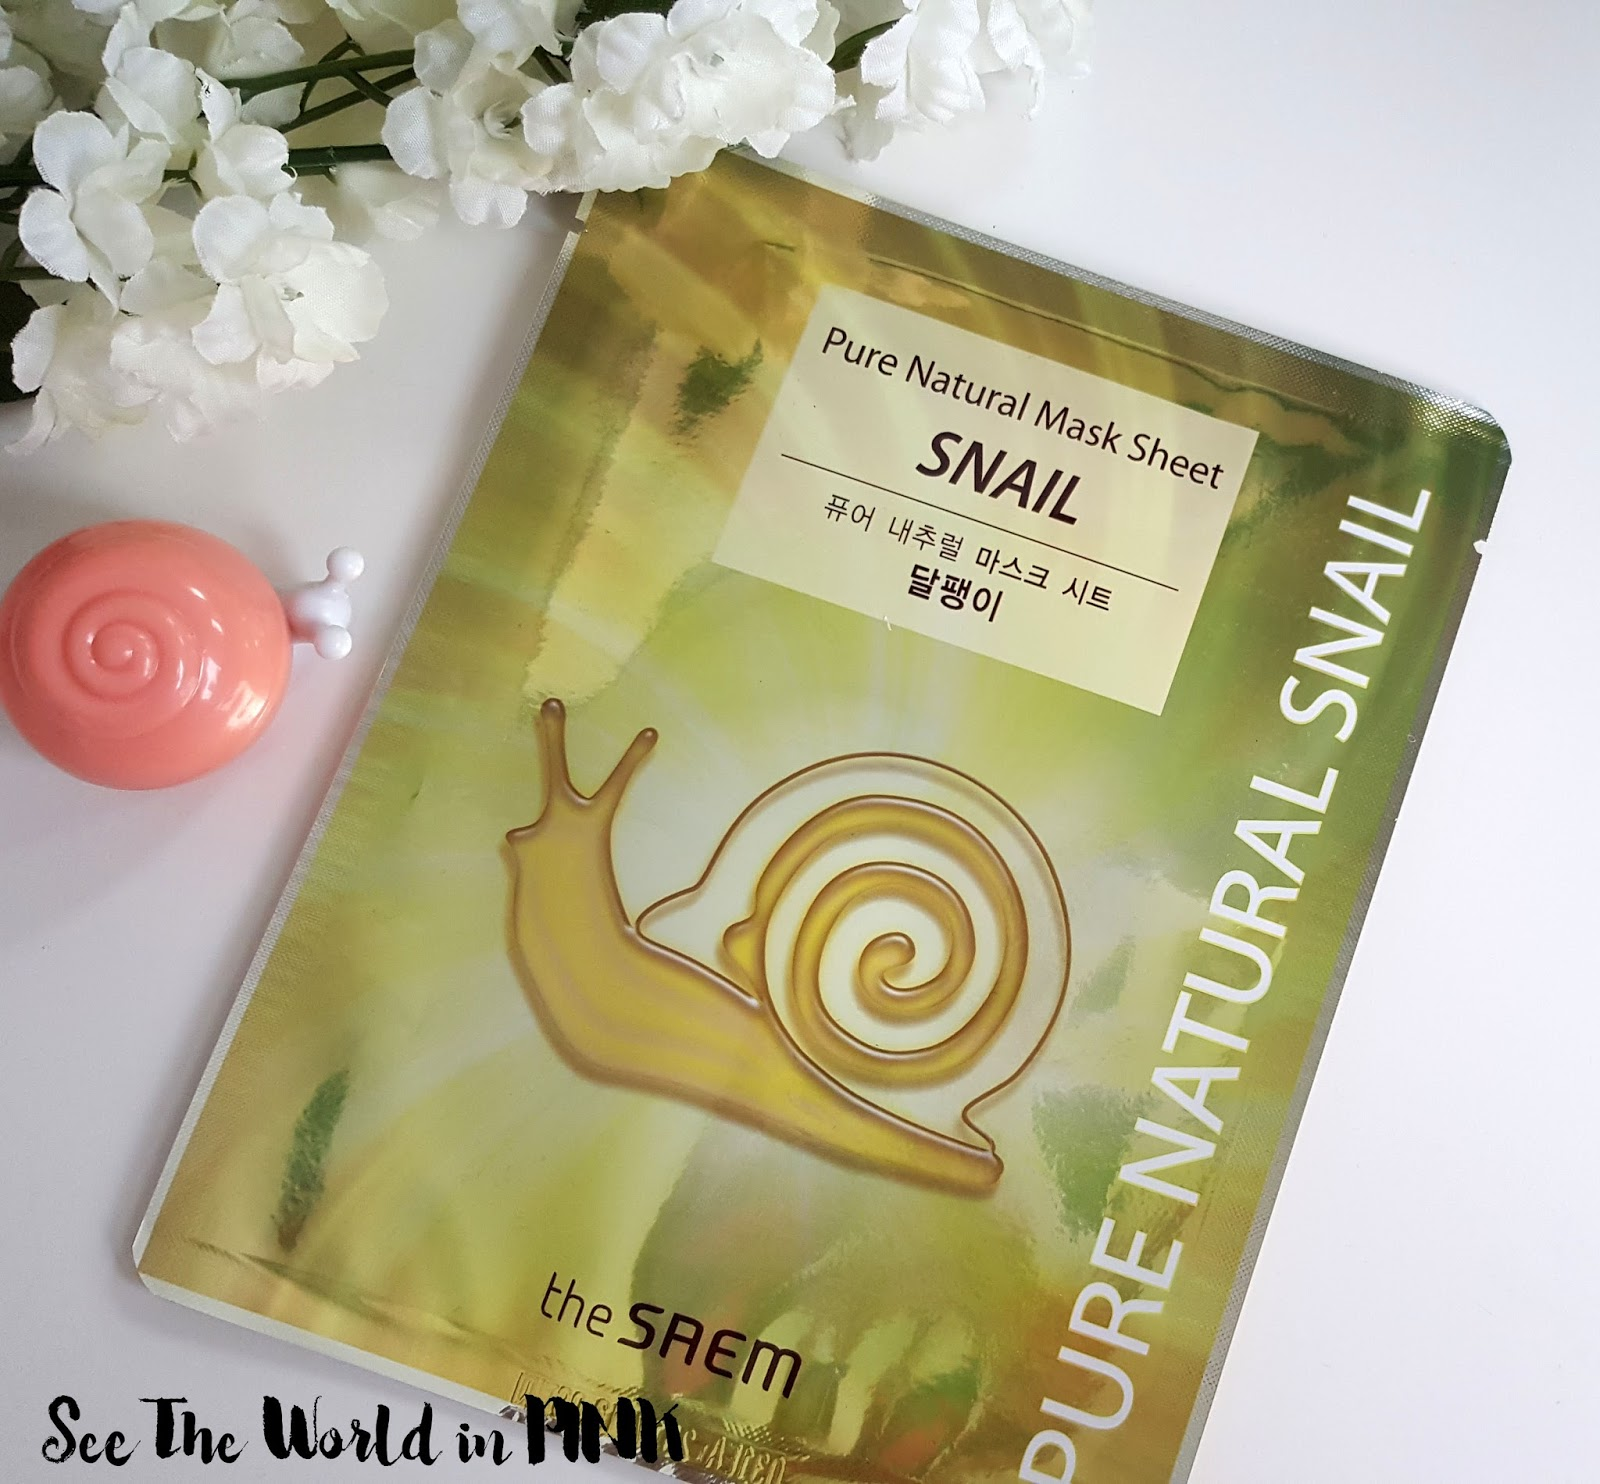 SNAIL Skincare Sunday - The Saem Pure Natural Mask Sheet Review